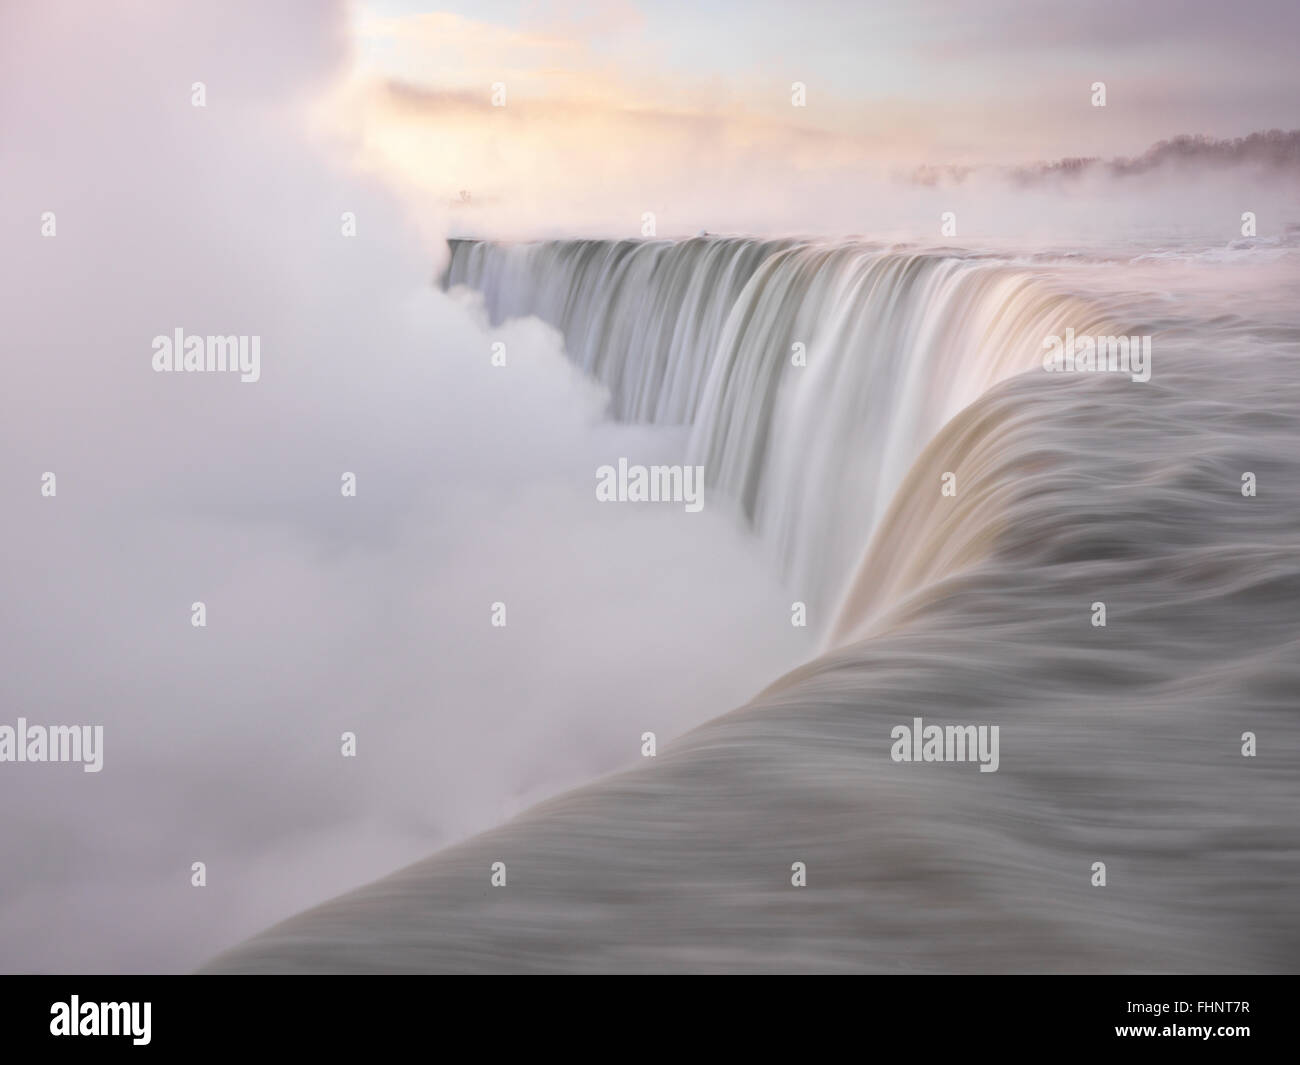 Brink of Niagara Falls Canadian Horseshoe beautiful sunrise scenery in soft light pastel colors, wintertime scenic. Stock Photo